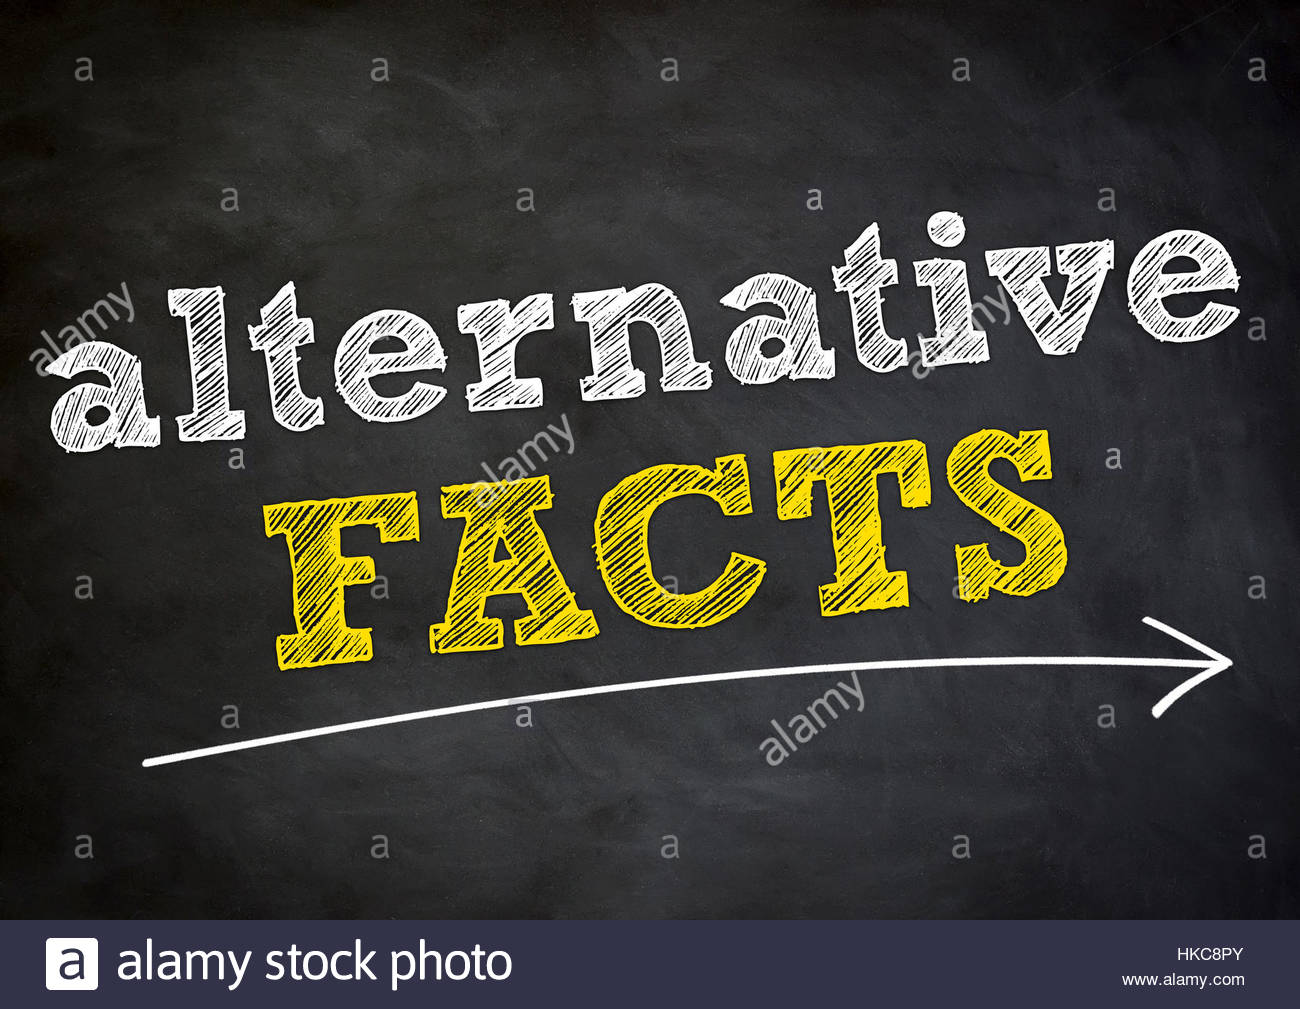 alternative facts - Stock Image